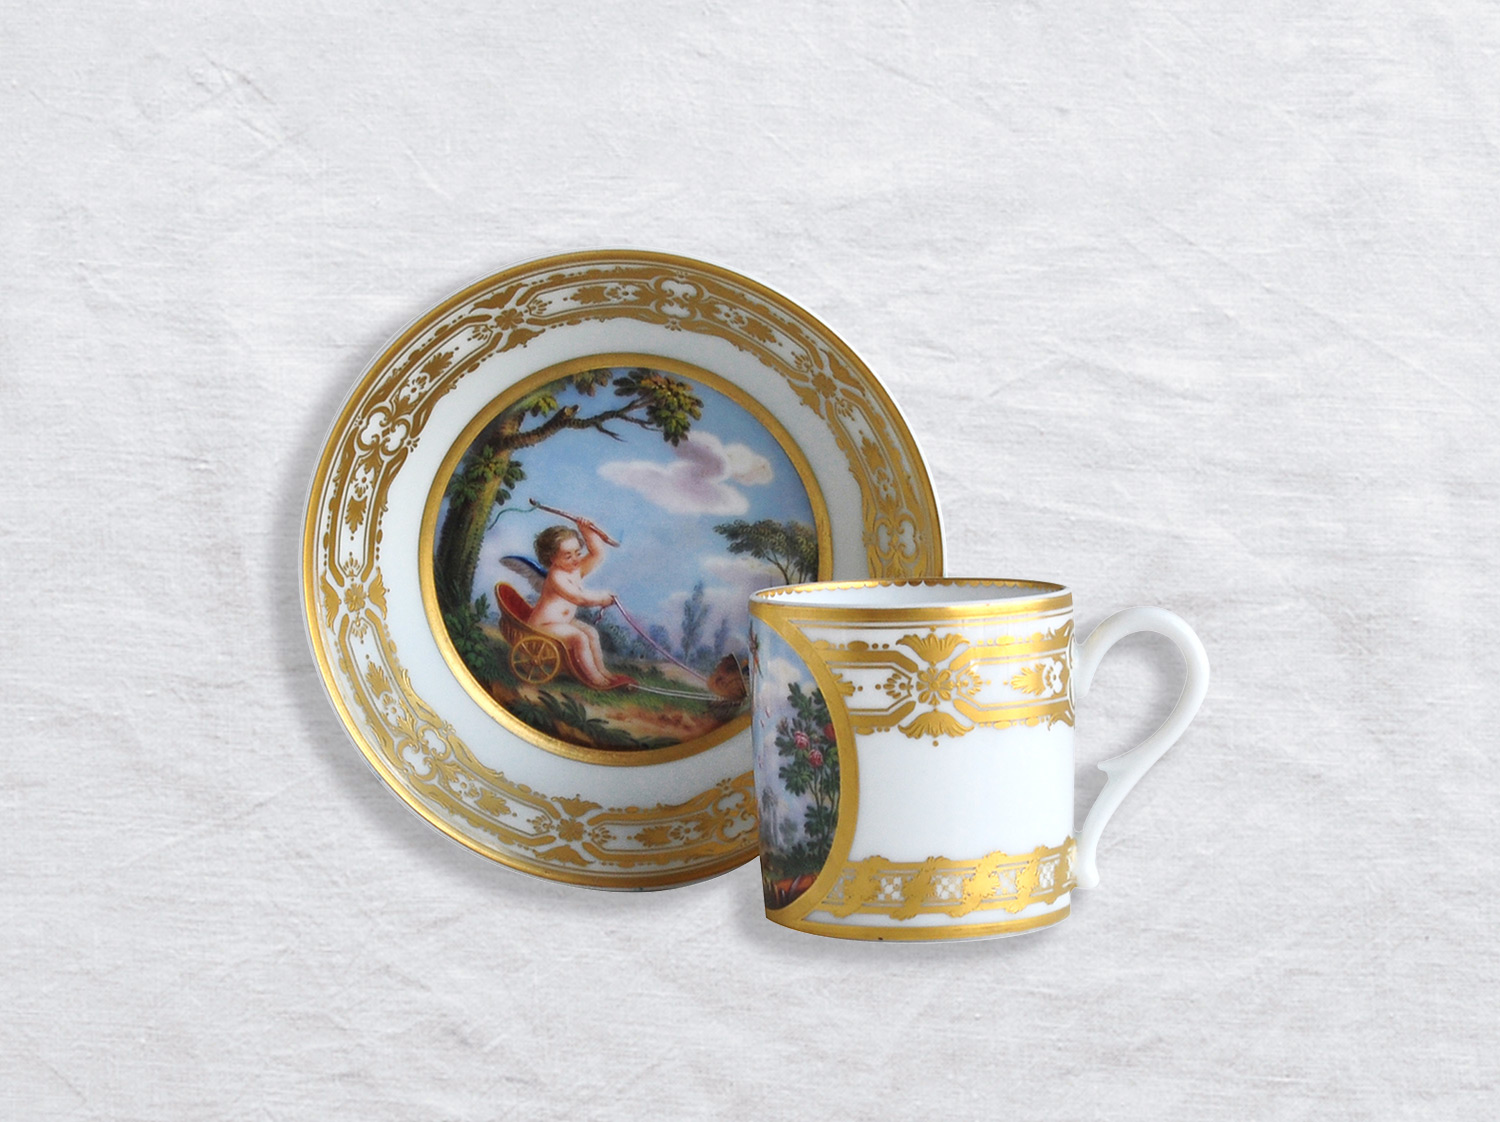 Tasse et soucoupe litron en porcelaine de la collection Venus corrigeant l amour Bernardaud